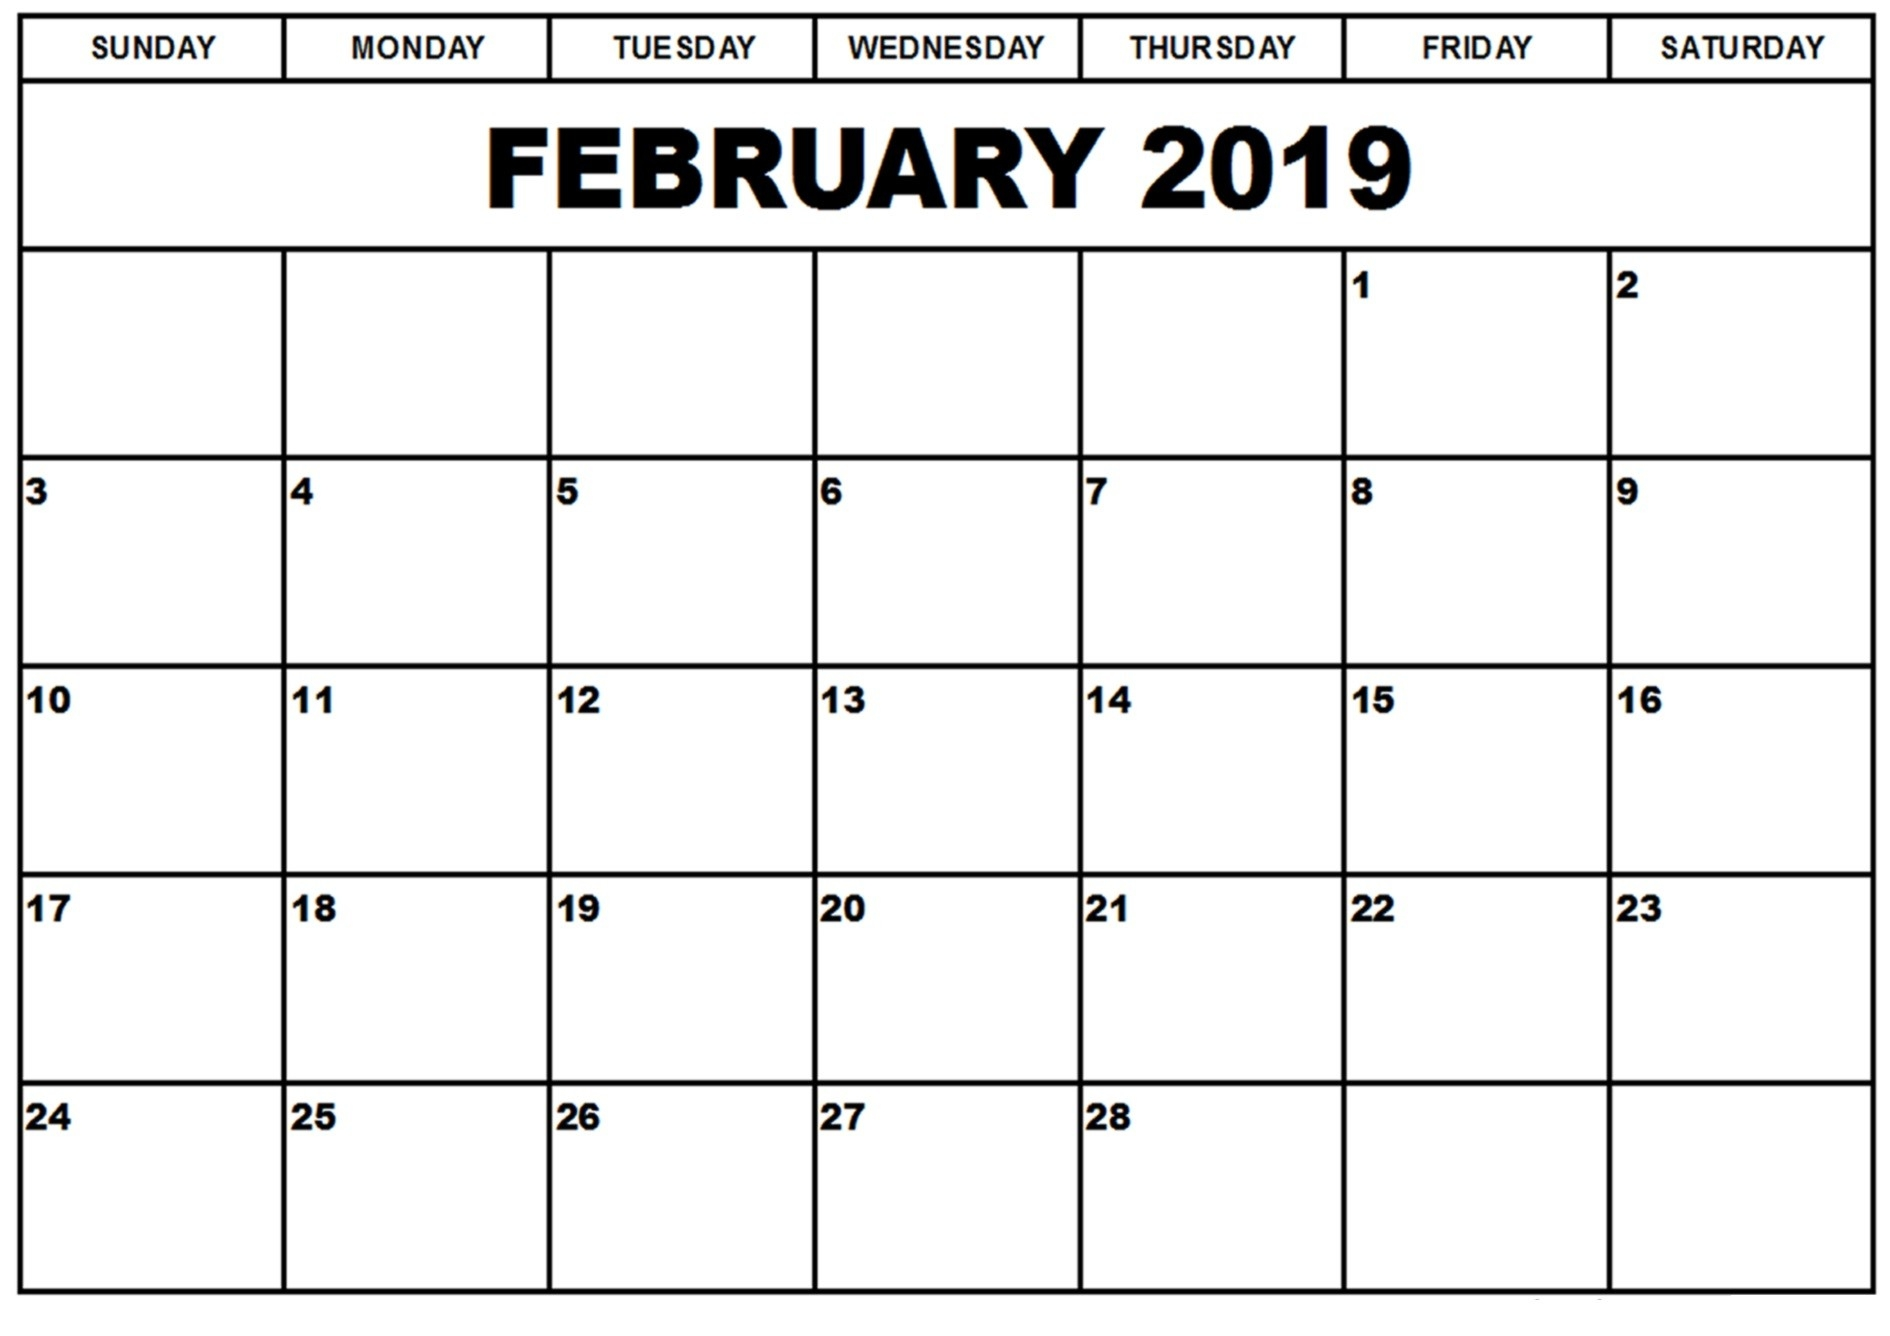 printable calendars save february 2019 calendar printable templates::February 2019 Calendar Fillable